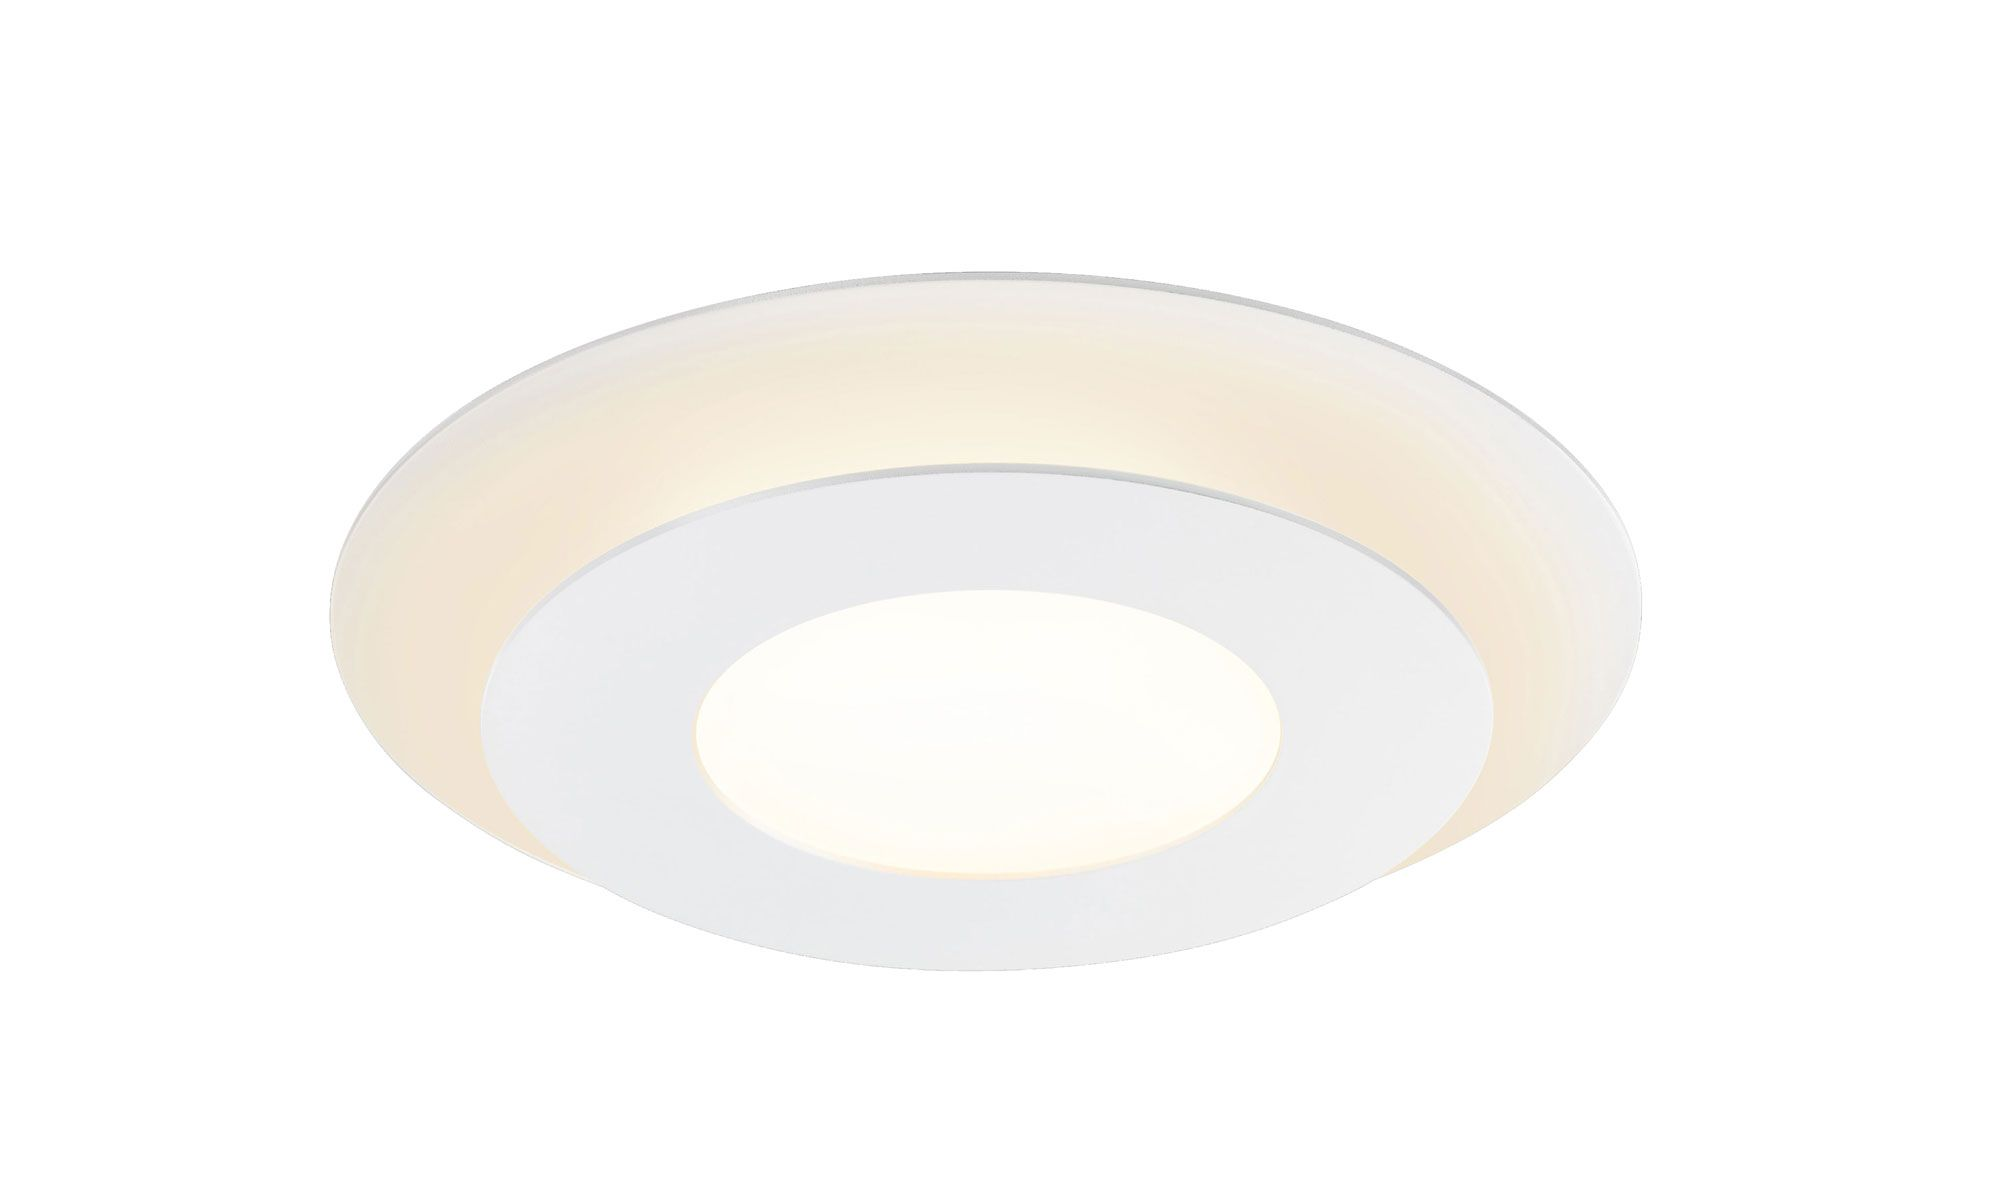 Offset Round Ceiling Flush Mount By Sonneman A Way Of Light 2729 98 With Images Downlights Sonneman Light